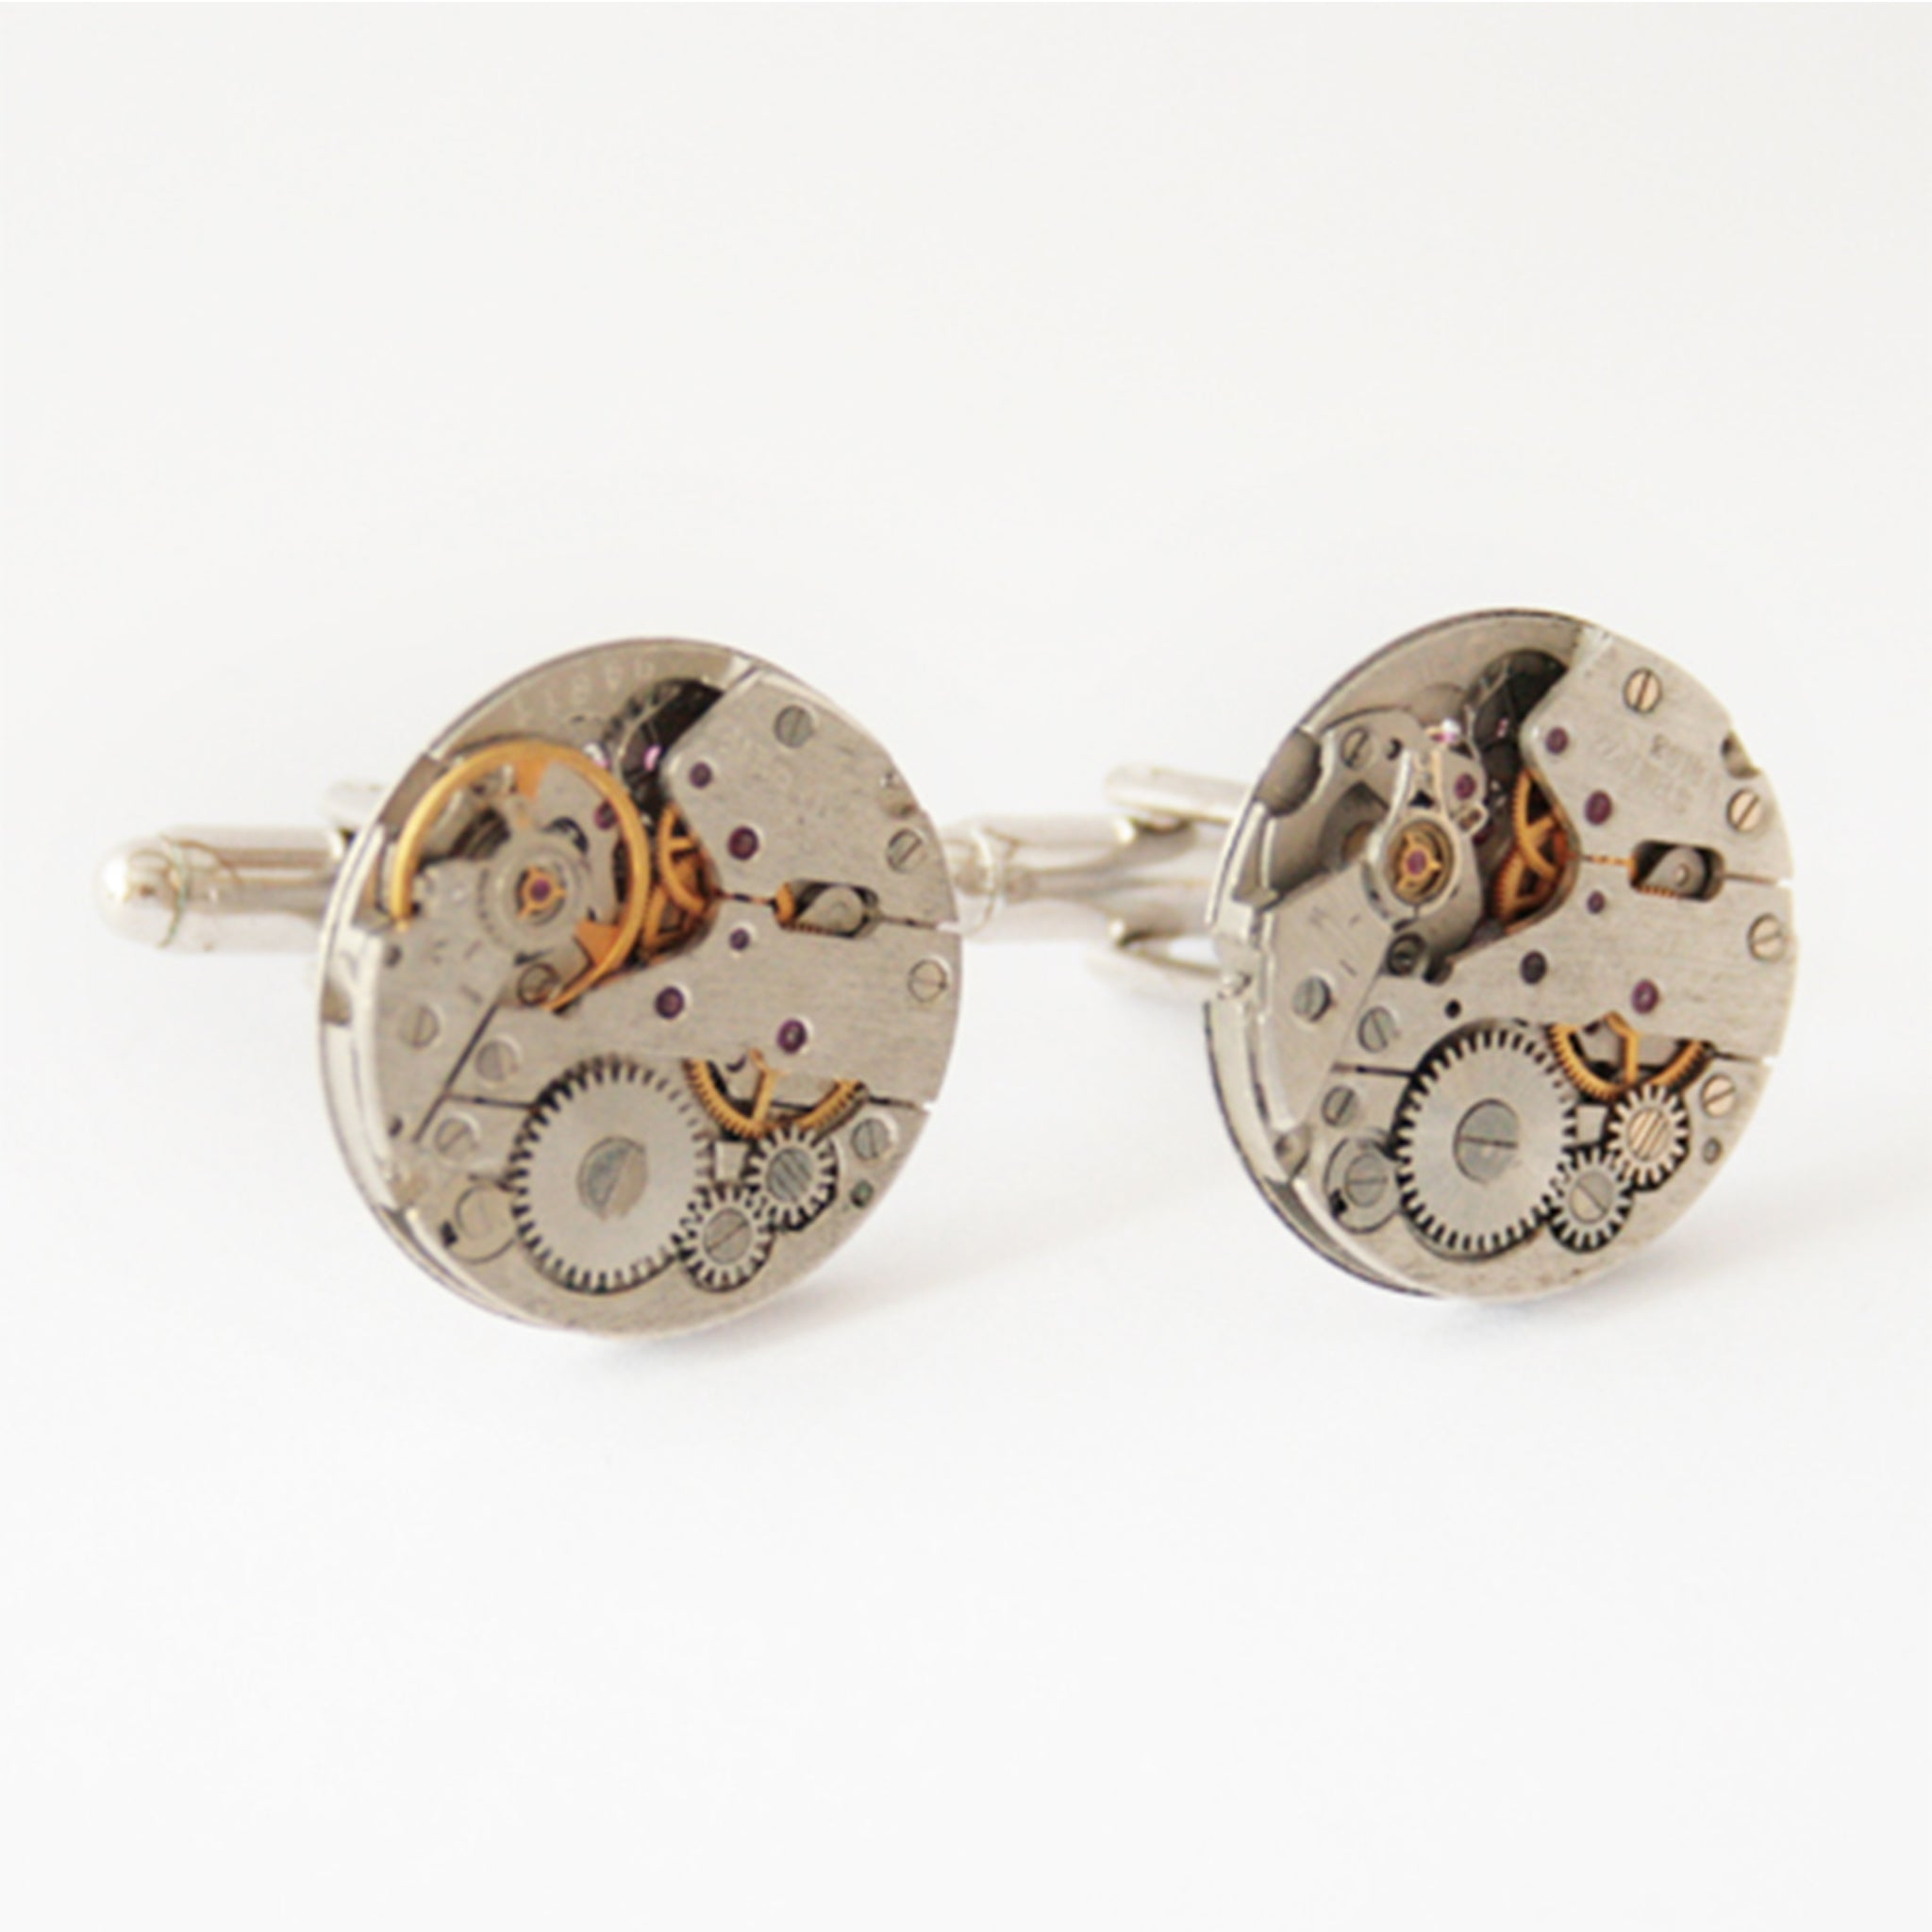 novelty wedding cufflinks in steampunk style made of watch movements